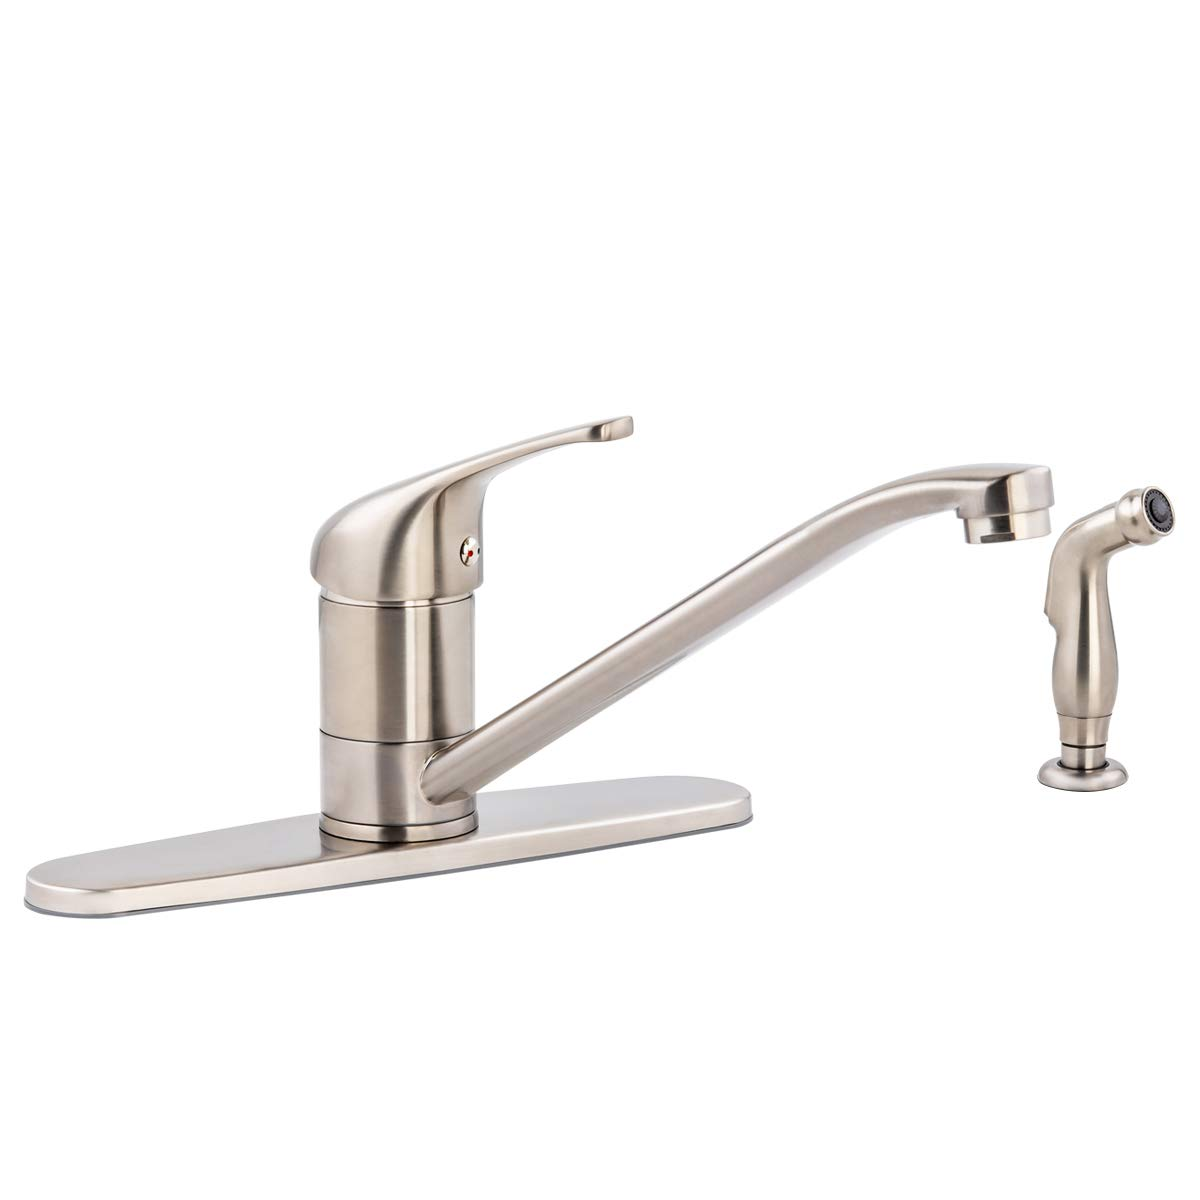 AmazonBasics Classic Kitchen Faucet Set with Sprayer, Satin Nickel